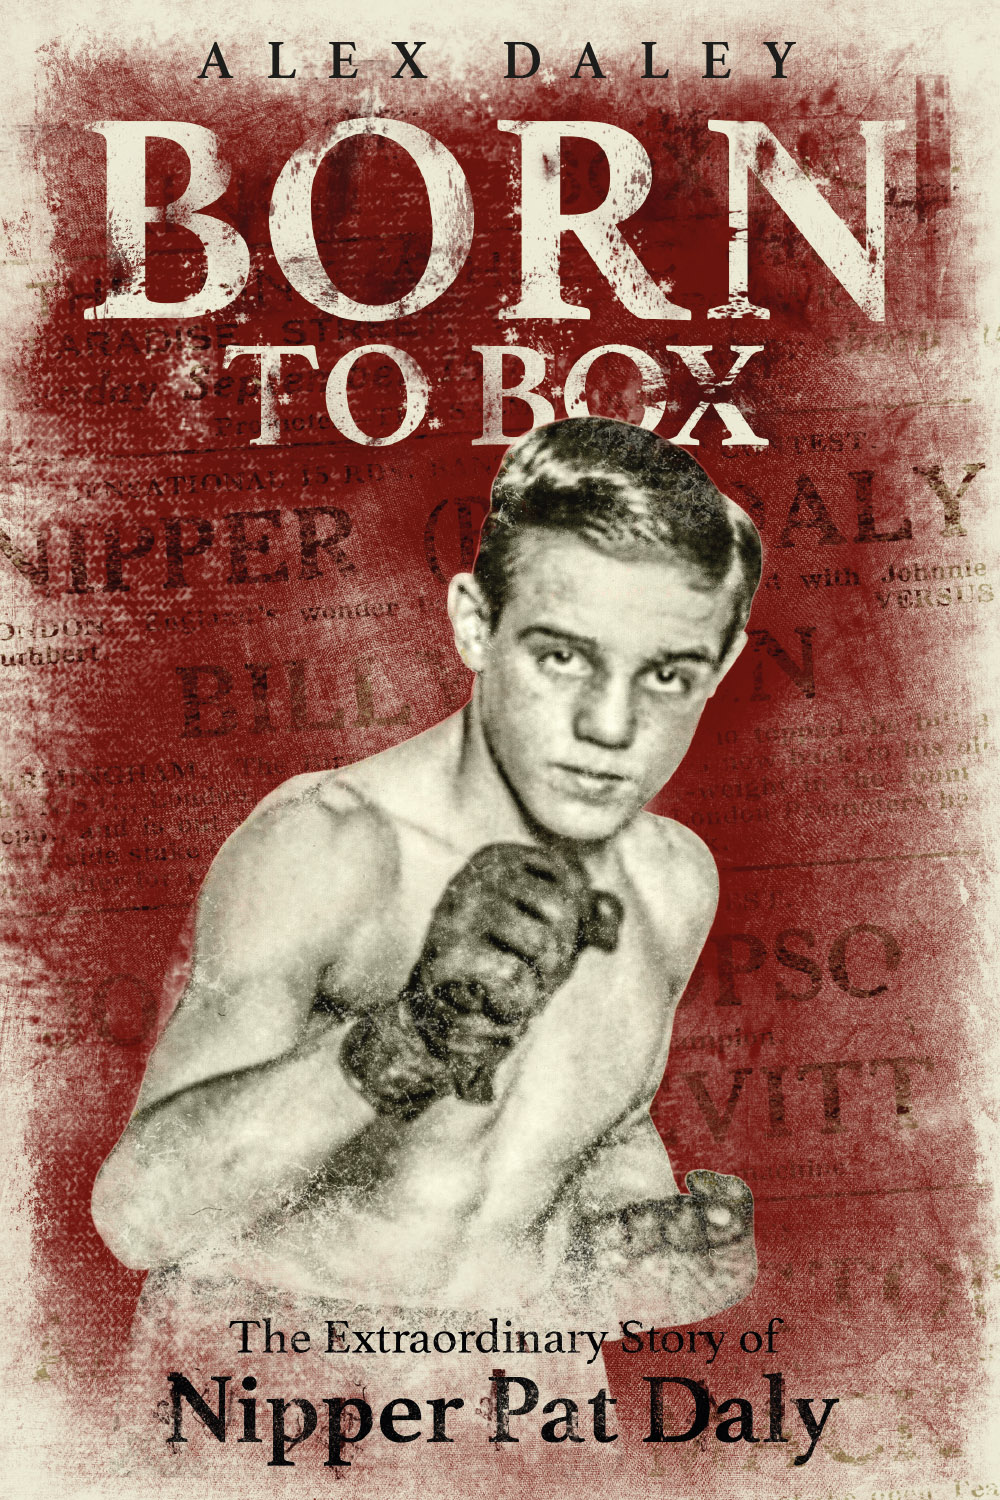 Born to Box